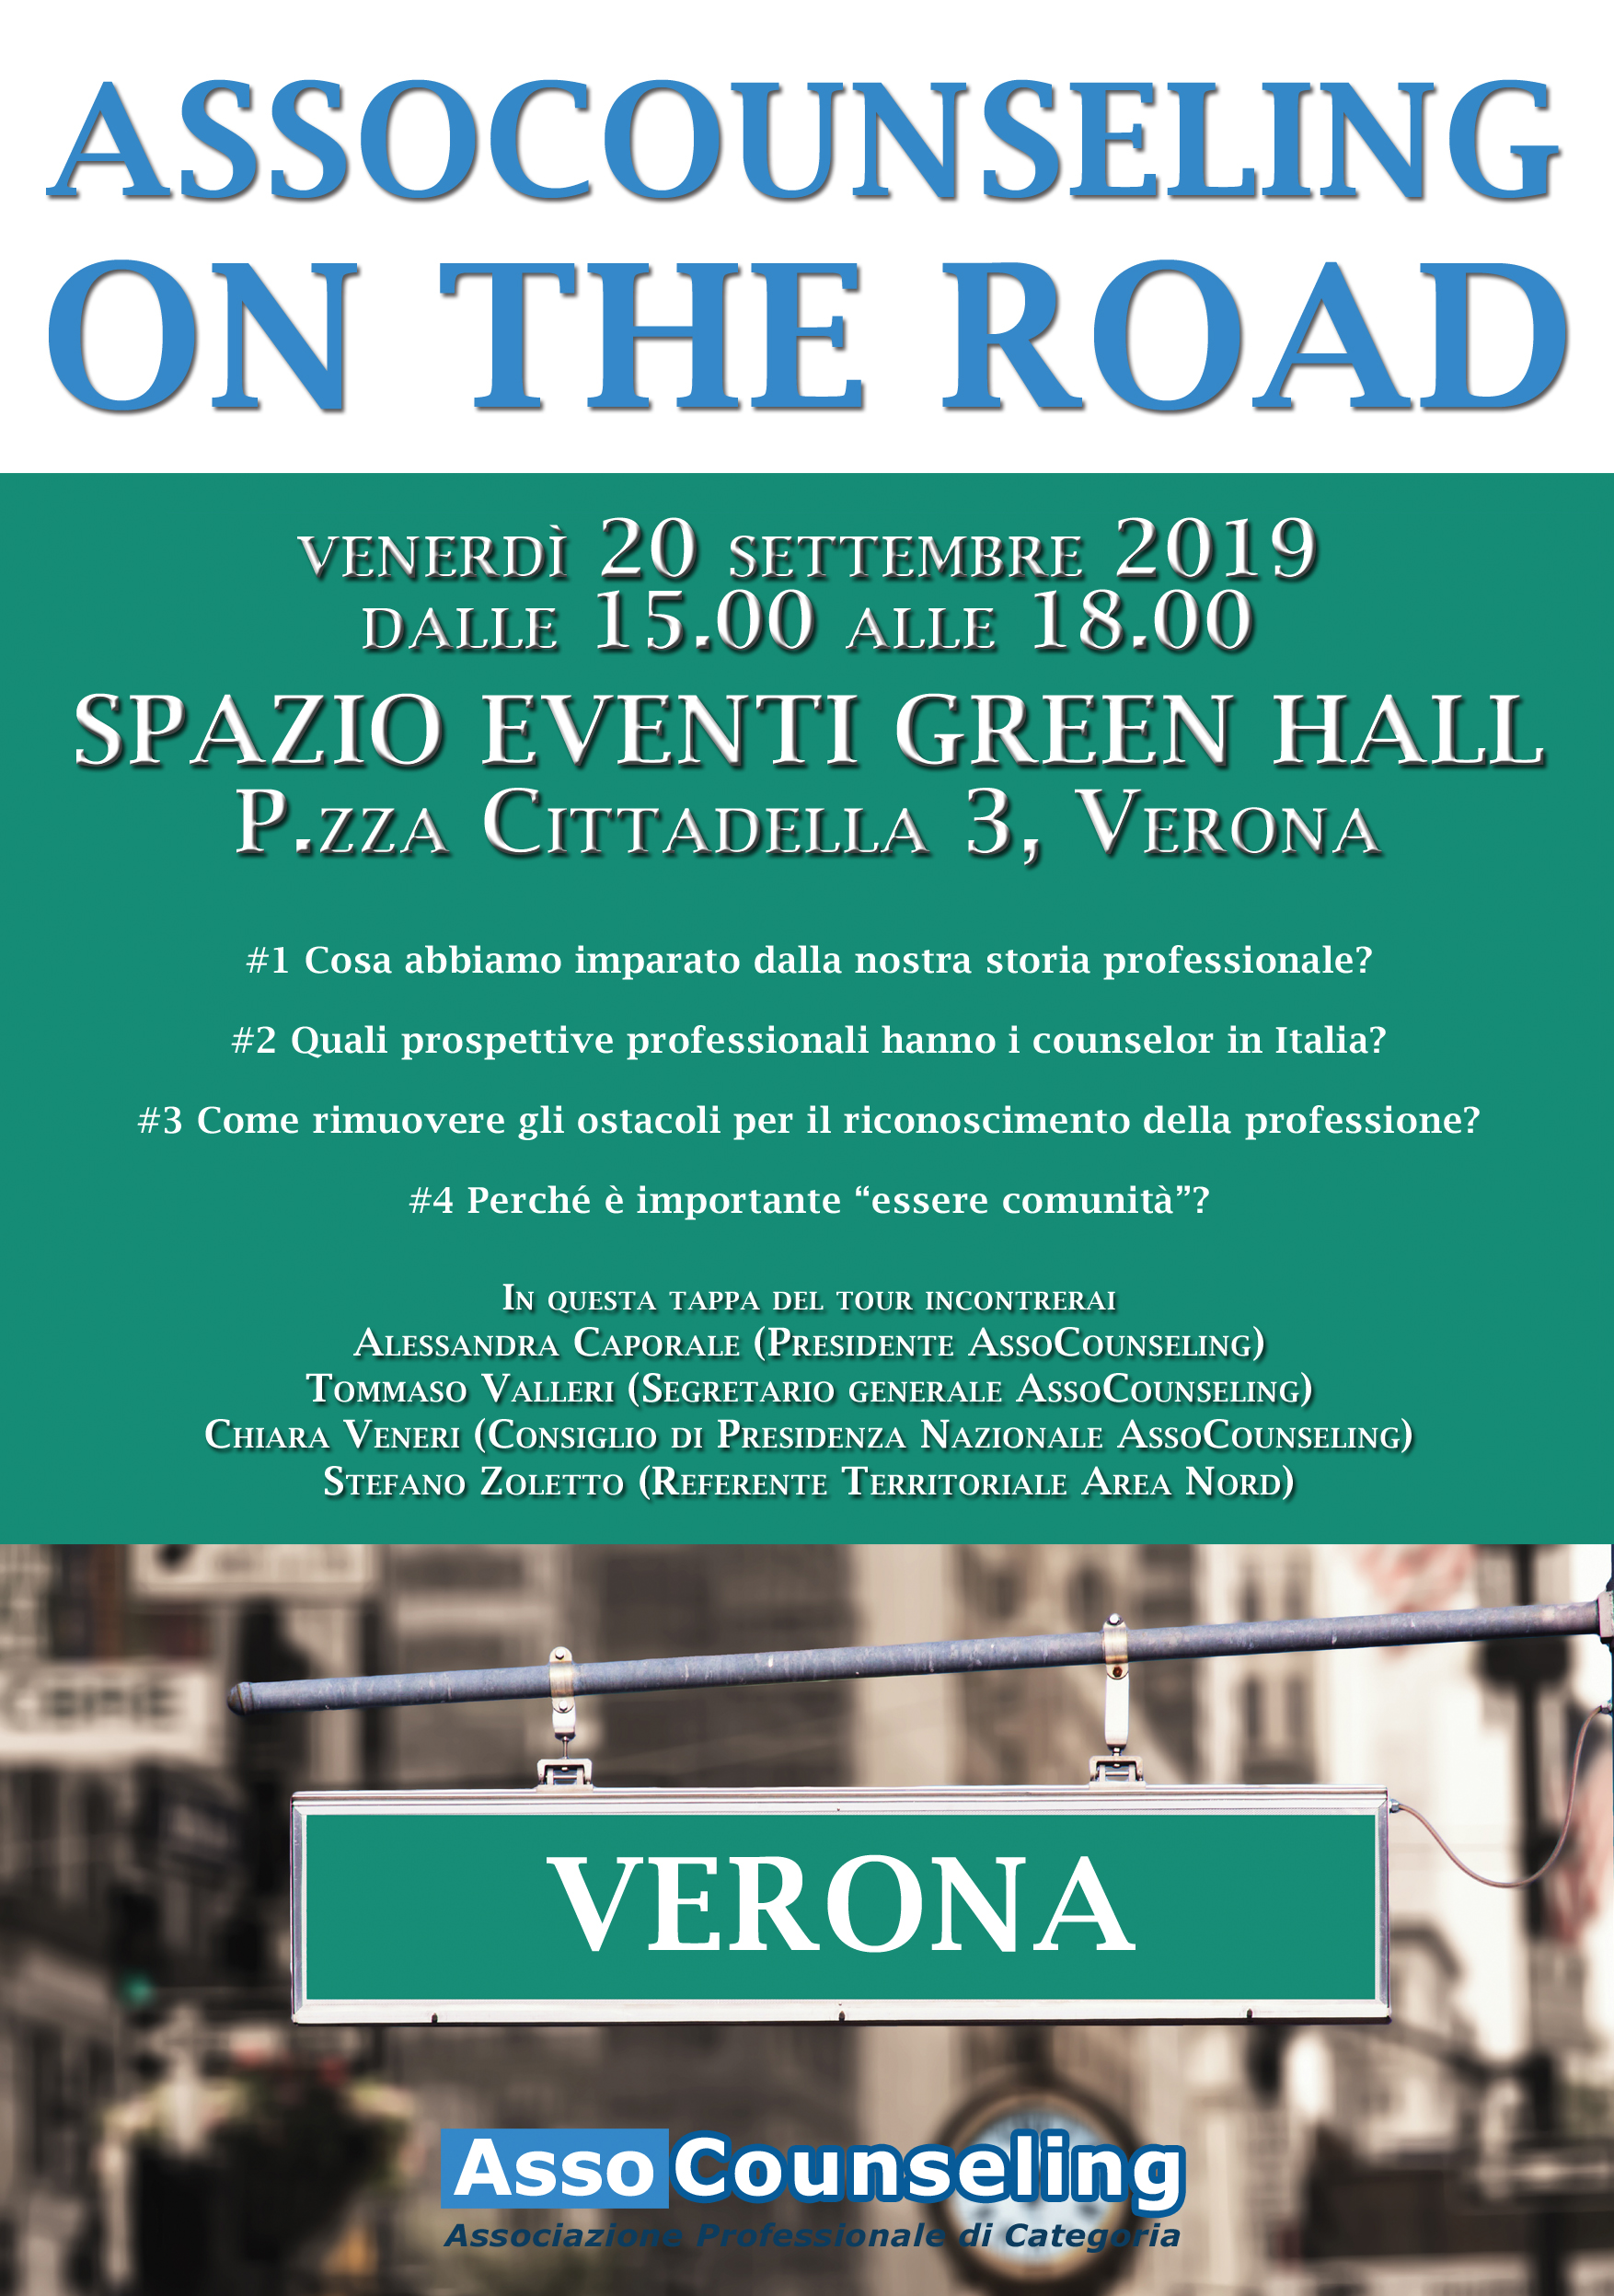 AssoCounseling on the road - Verona, 20 settembre 2019